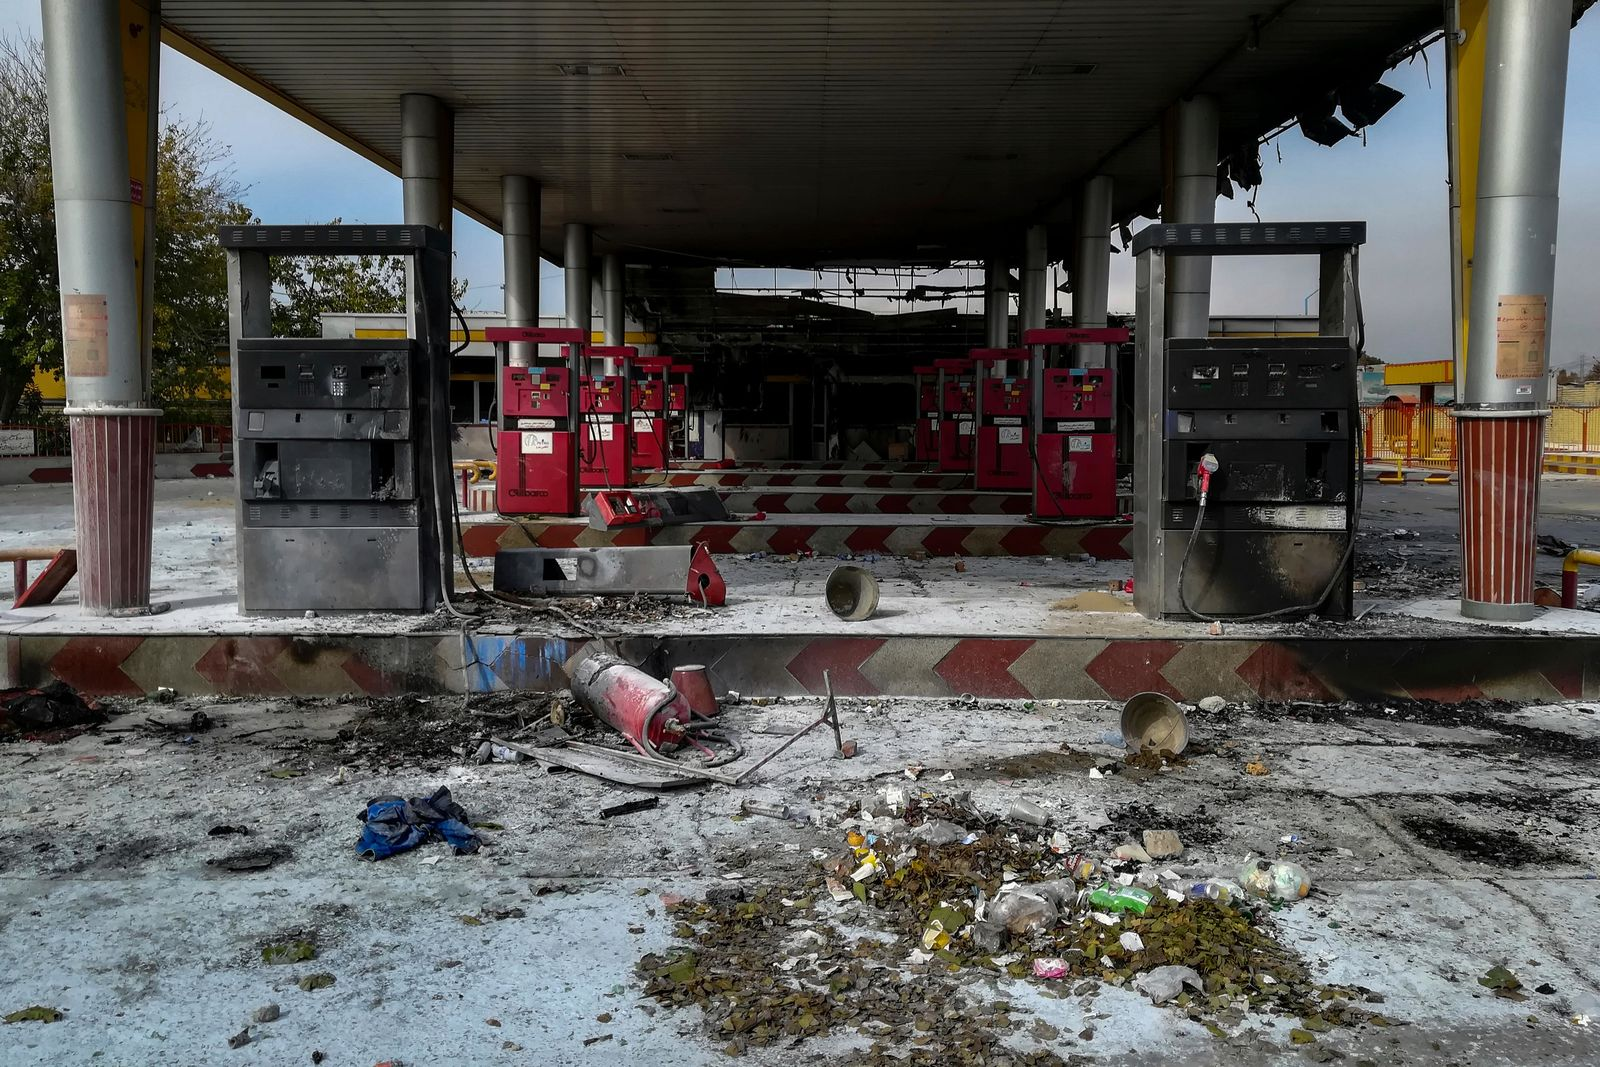 This photo released by the Iranian Students' News Agency, ISNA, shows a gas station that was burned during protests that followed authorities' decision to raise gasoline prices, in Tehran, Iran, Sunday, Nov. 17, 2019. (Abdolvahed Mirzazadeh/ISNA via AP)